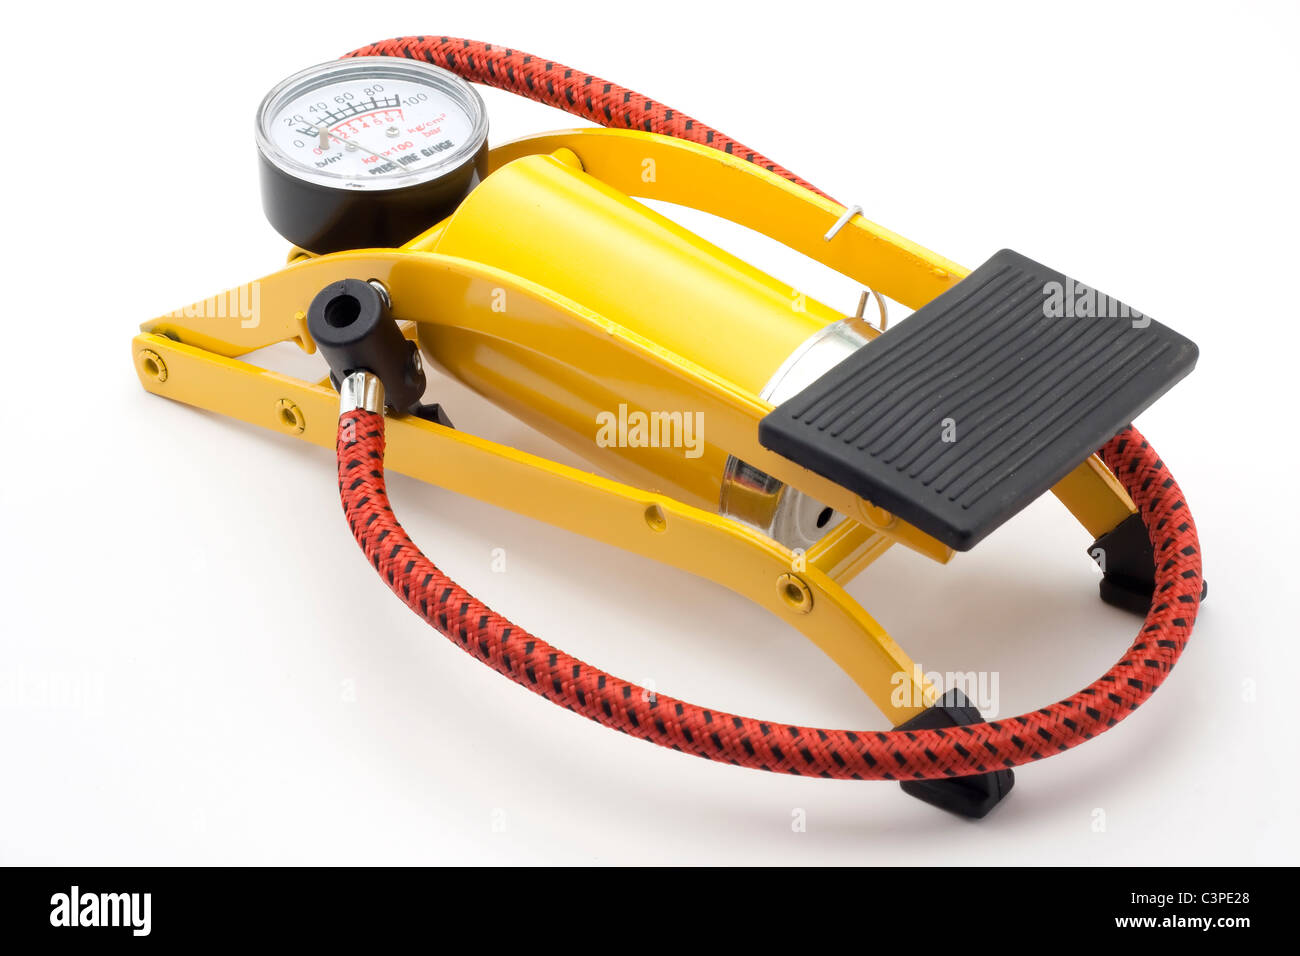 Inflator with pressure gauge on white background - Stock Image